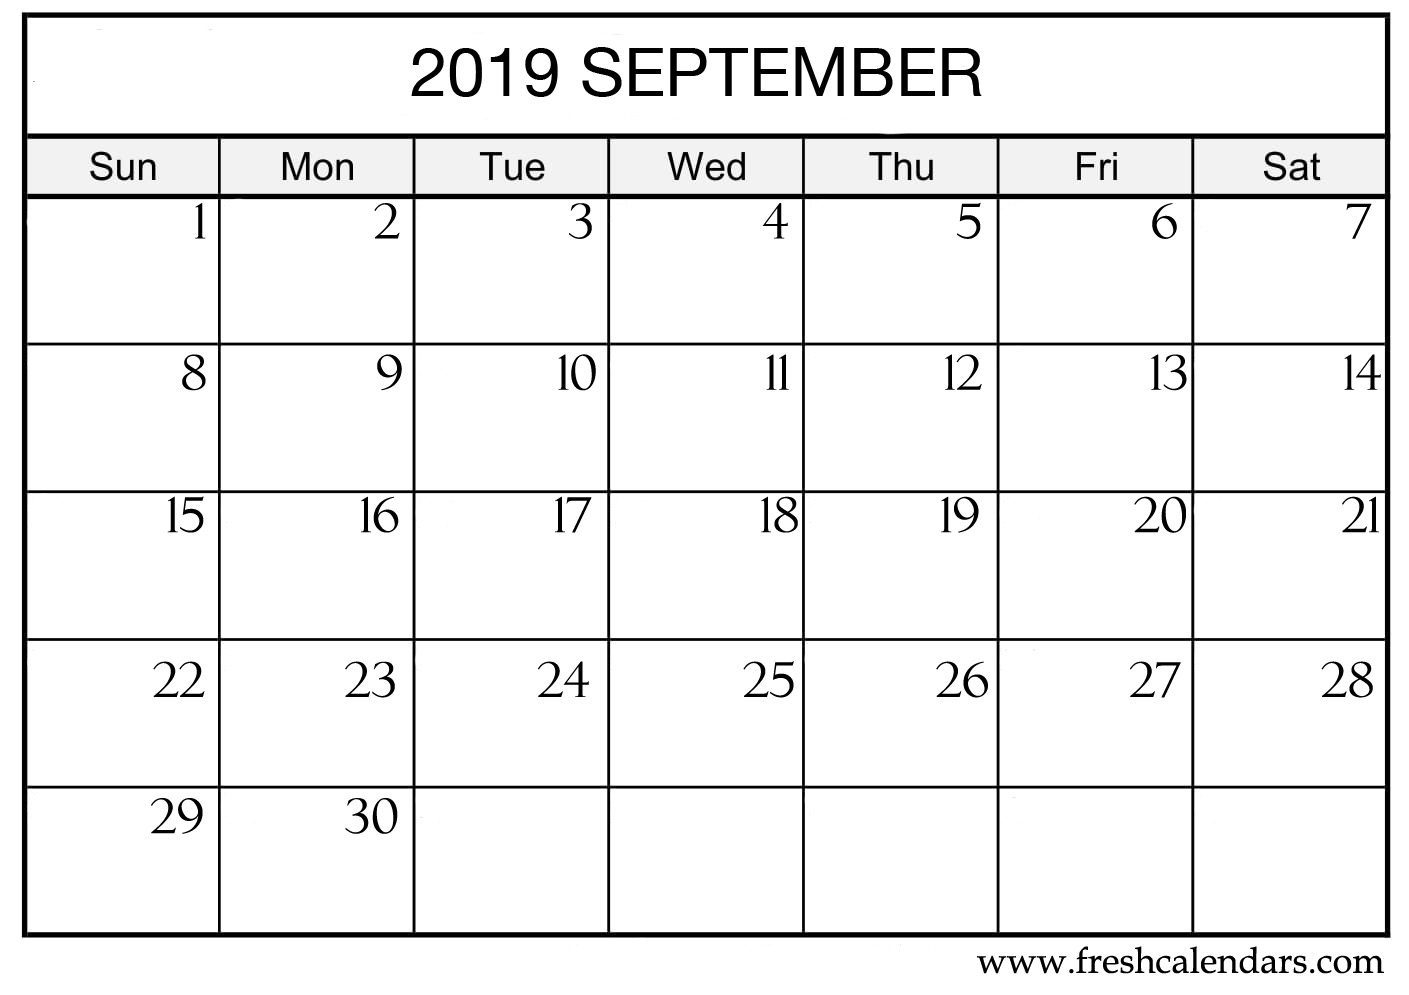 September 2019 Calendar Printable - Fresh Calendars